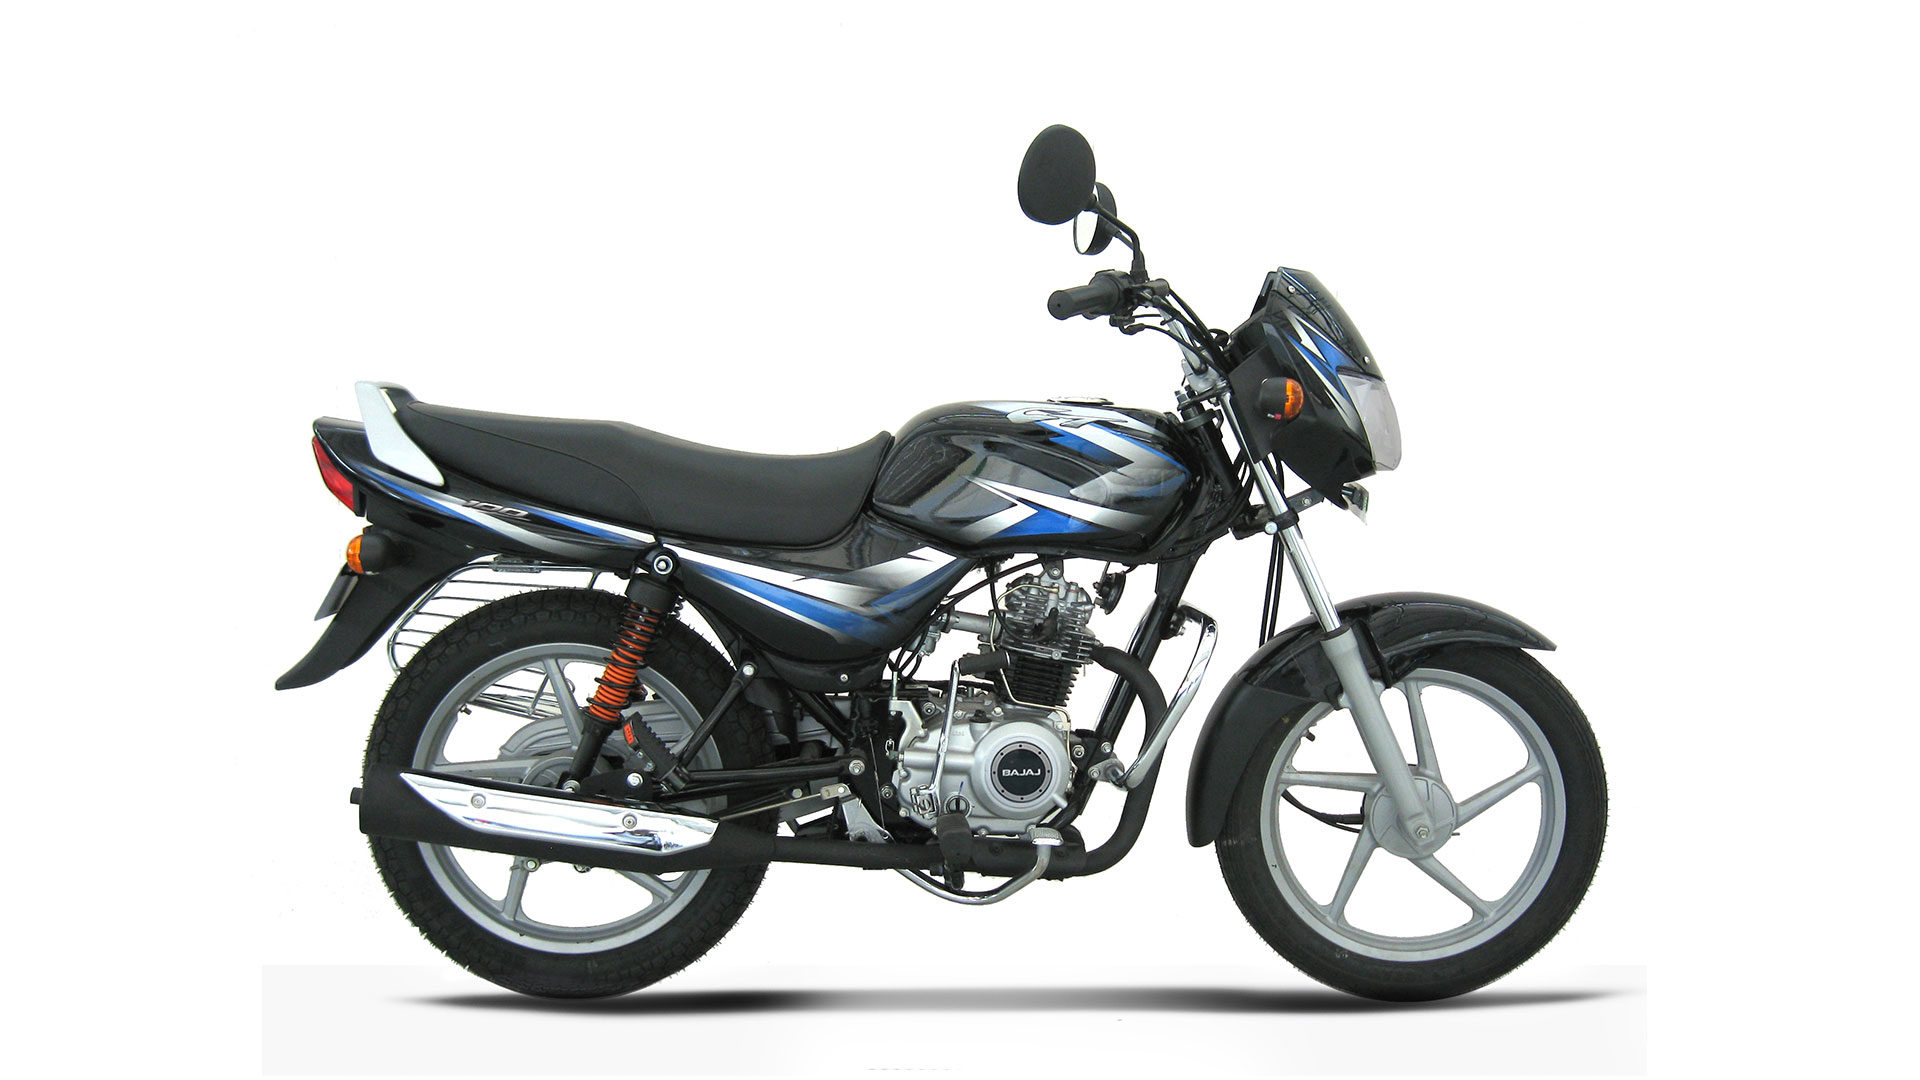 Honda Dealers In Ct >> Bajaj CT 100 2015 Alloy - Price, Mileage, Reviews, Specification, Gallery - Overdrive